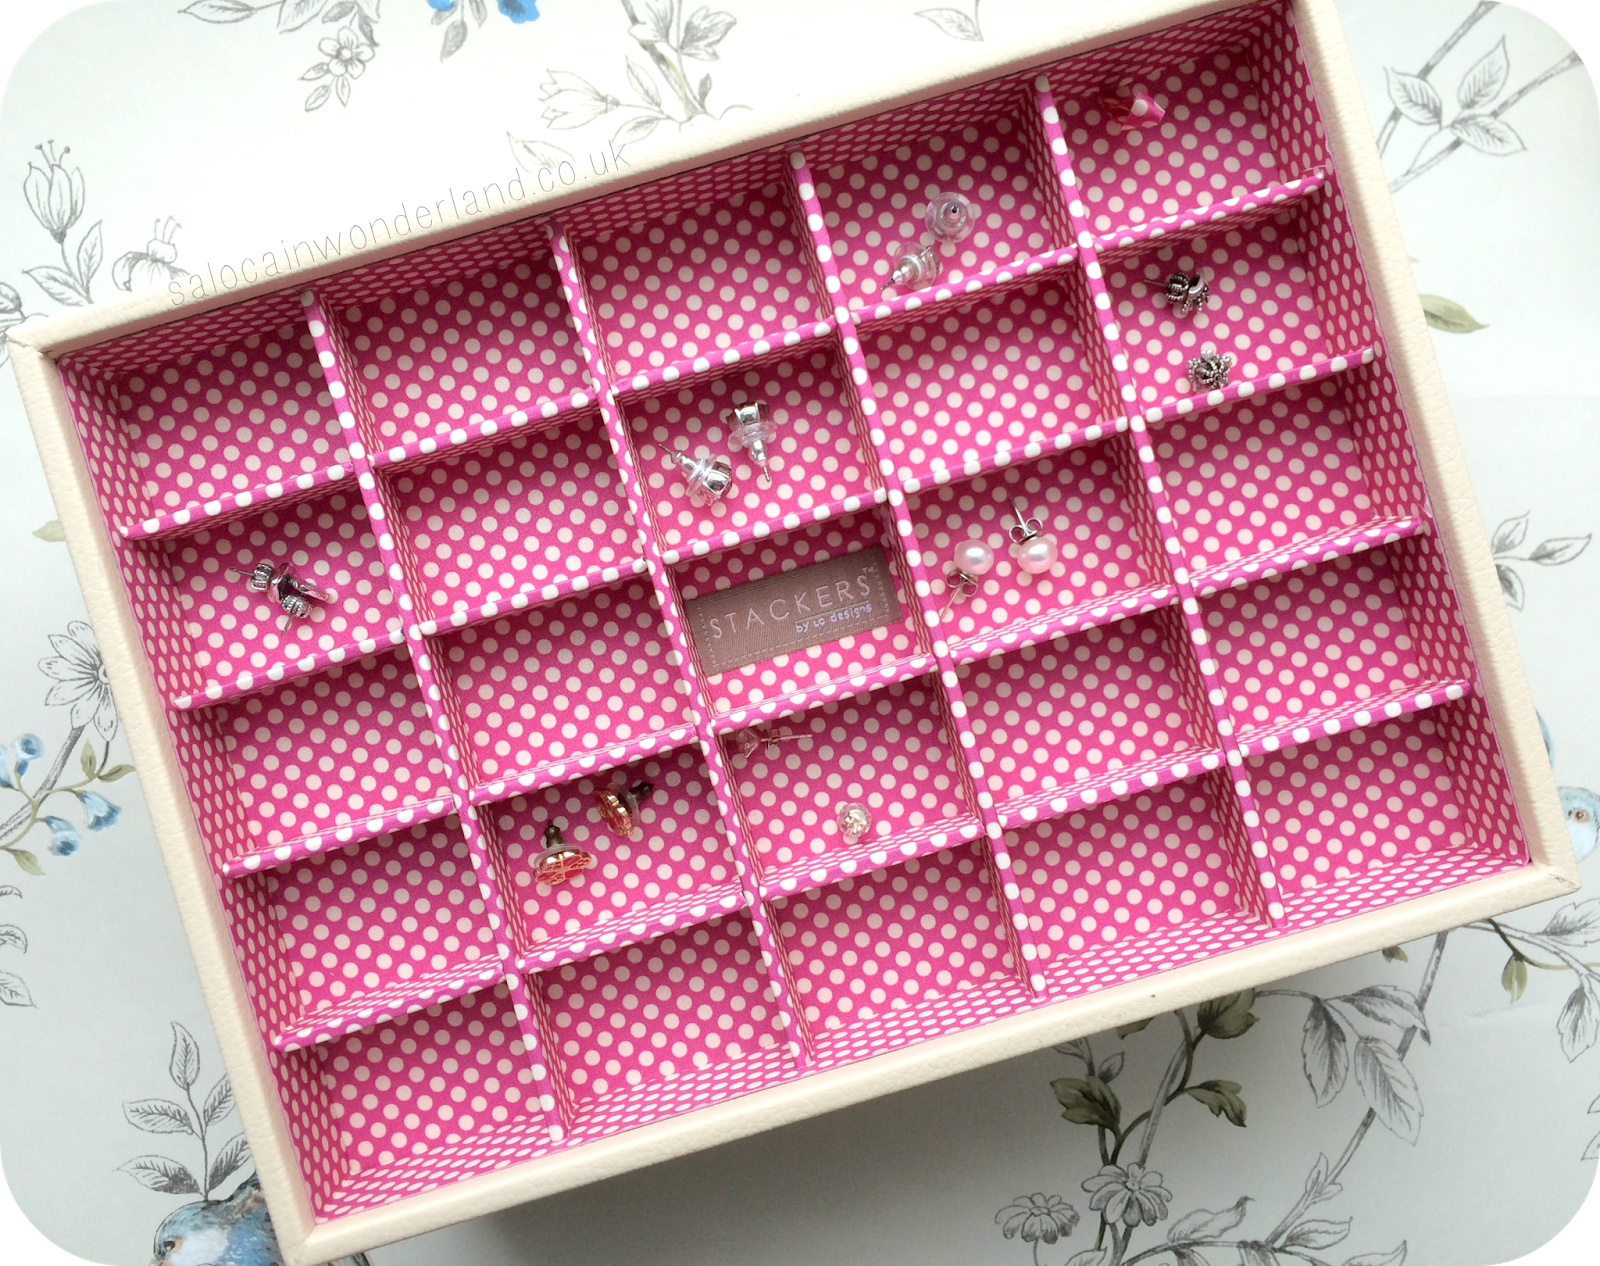 Stackers Jewellery Box by LC Designs Box